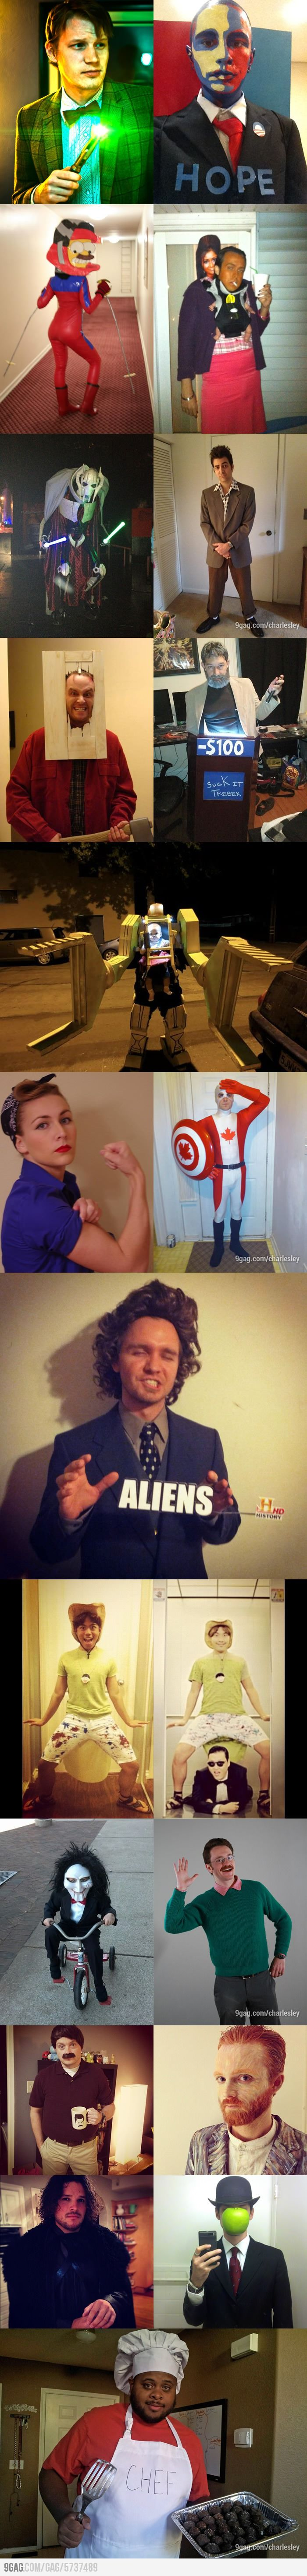 The Best Halloween Costumes of 2012